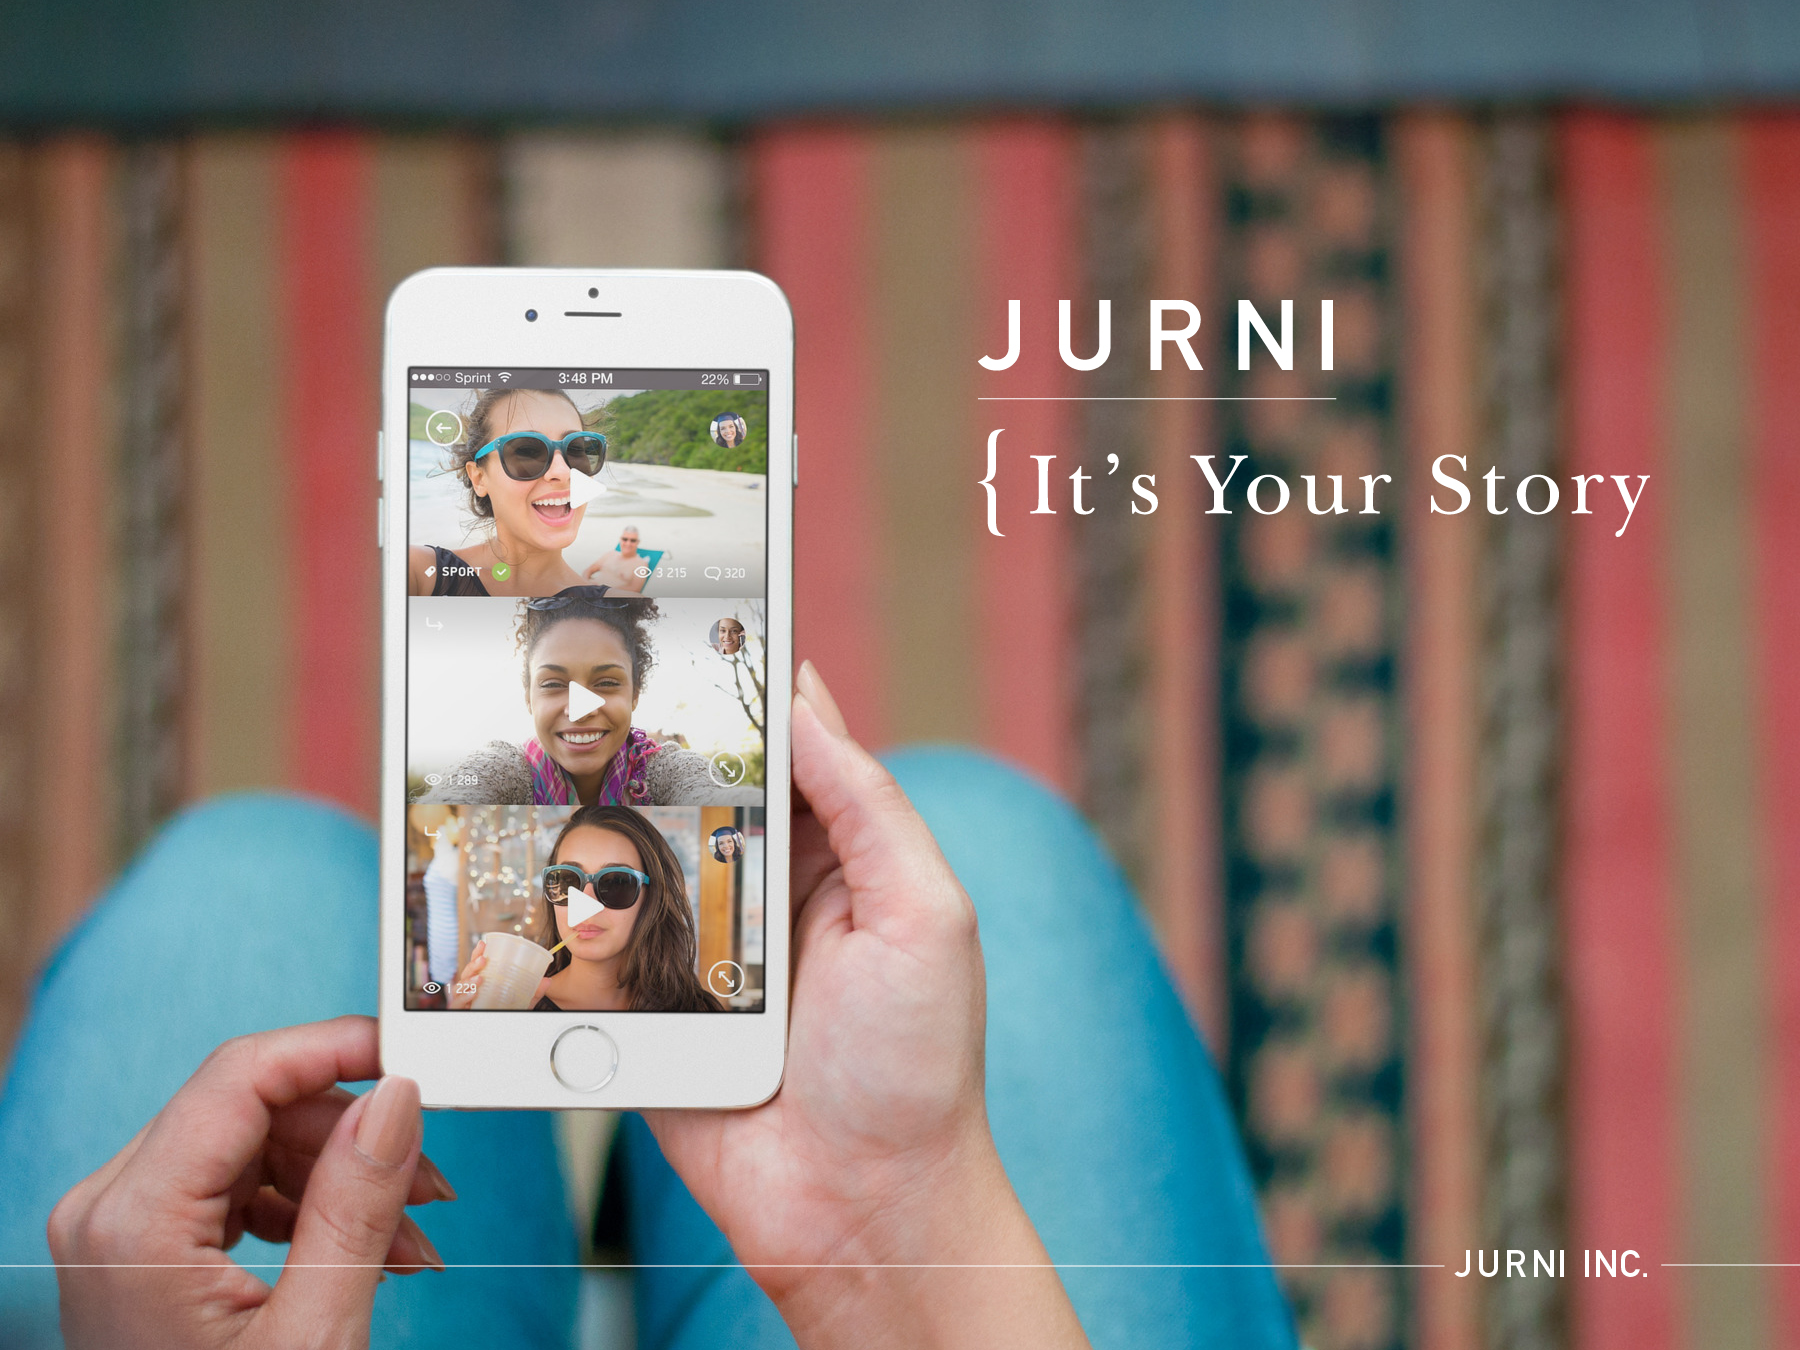 Jurni - New Video Journaling Application Puts Modern Spin on Human Reflection